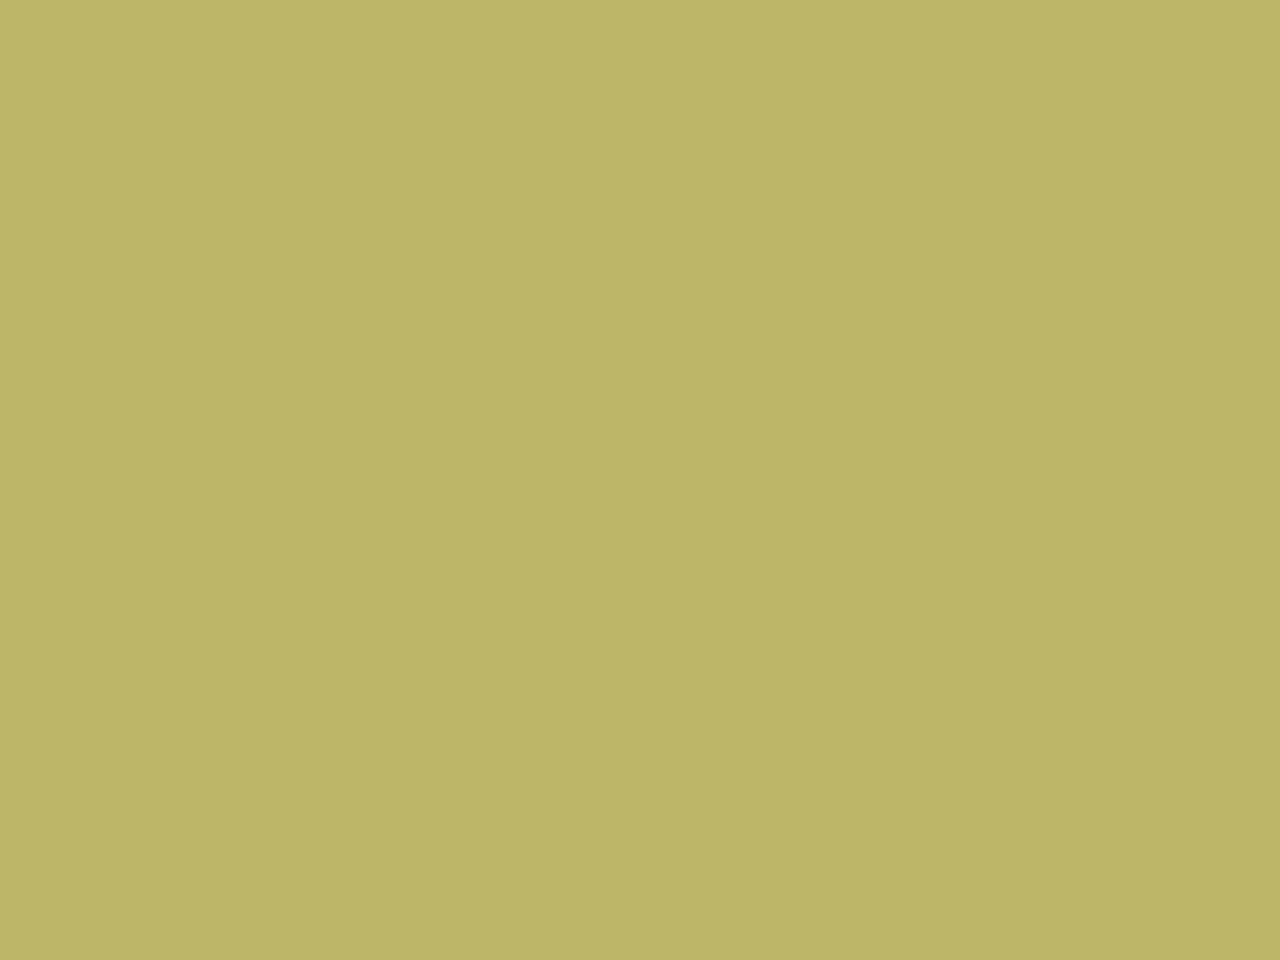 1280x960 Dark Khaki Solid Color Background